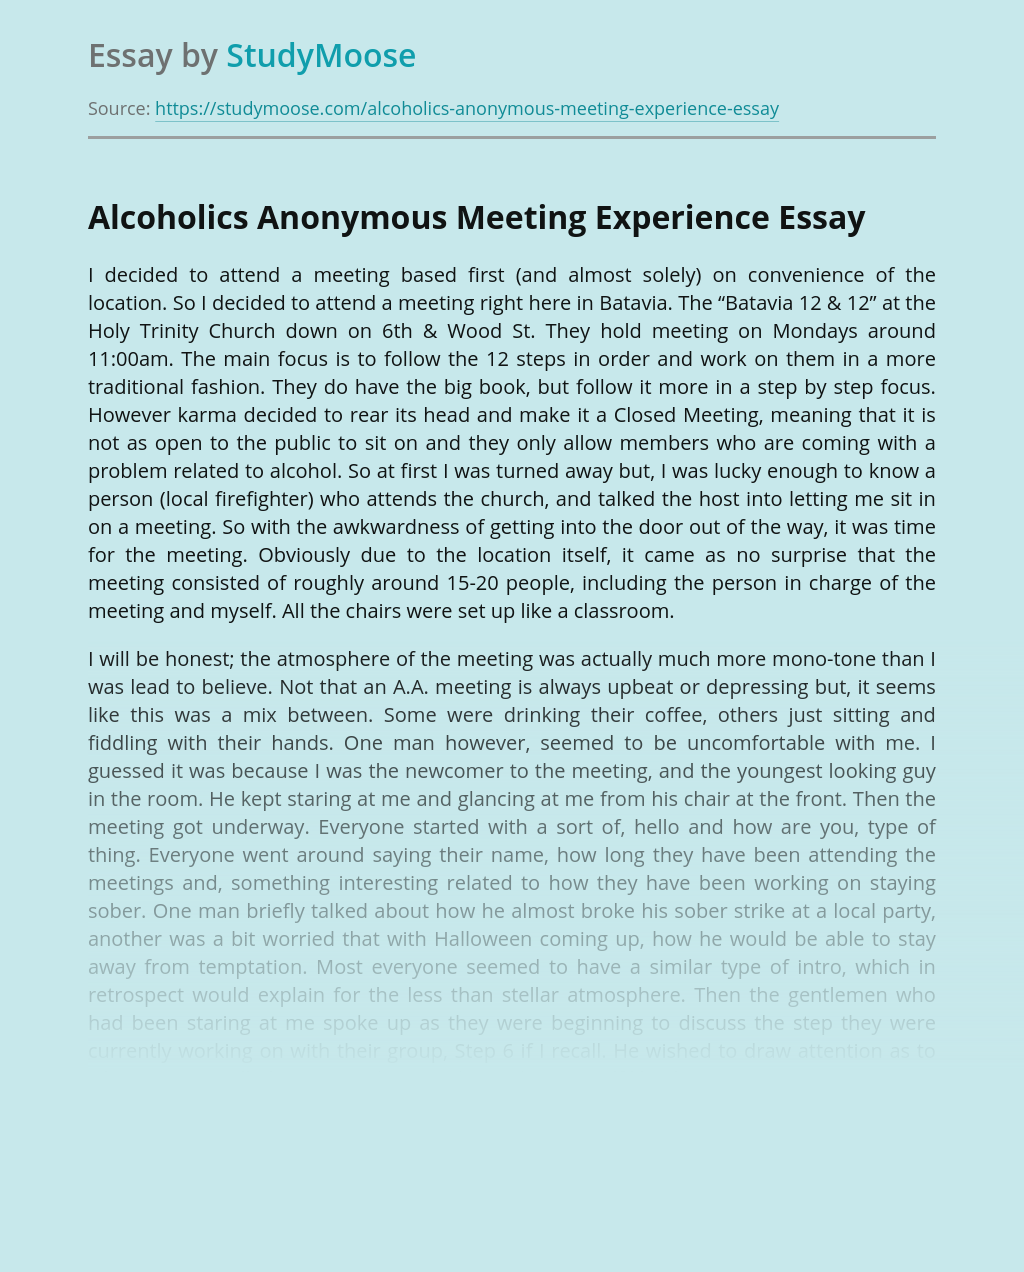 Alcoholics Anonymous Meeting Experience